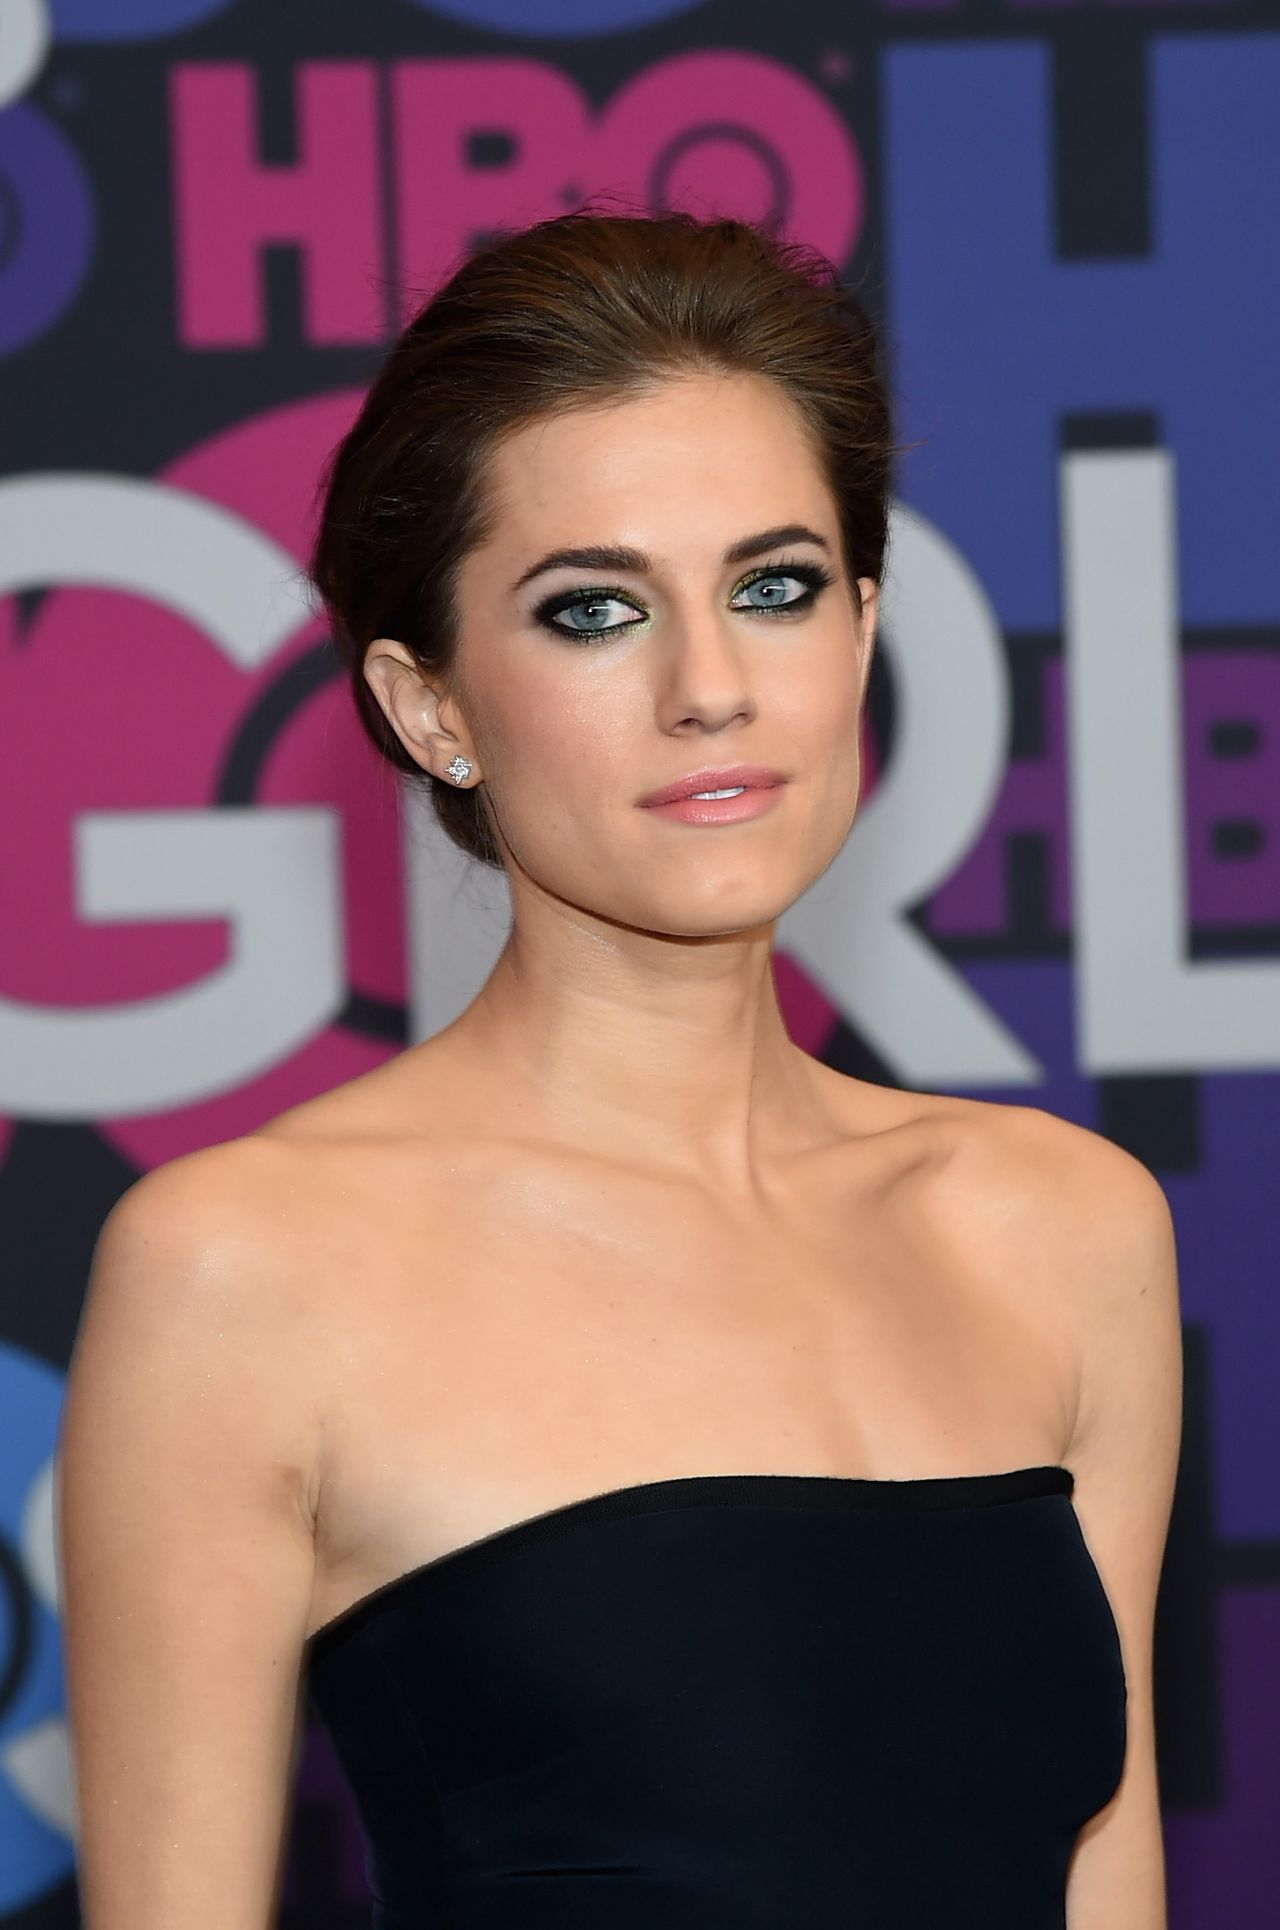 allison-williams-girls-season-4-premiere-in-new-york-city_3